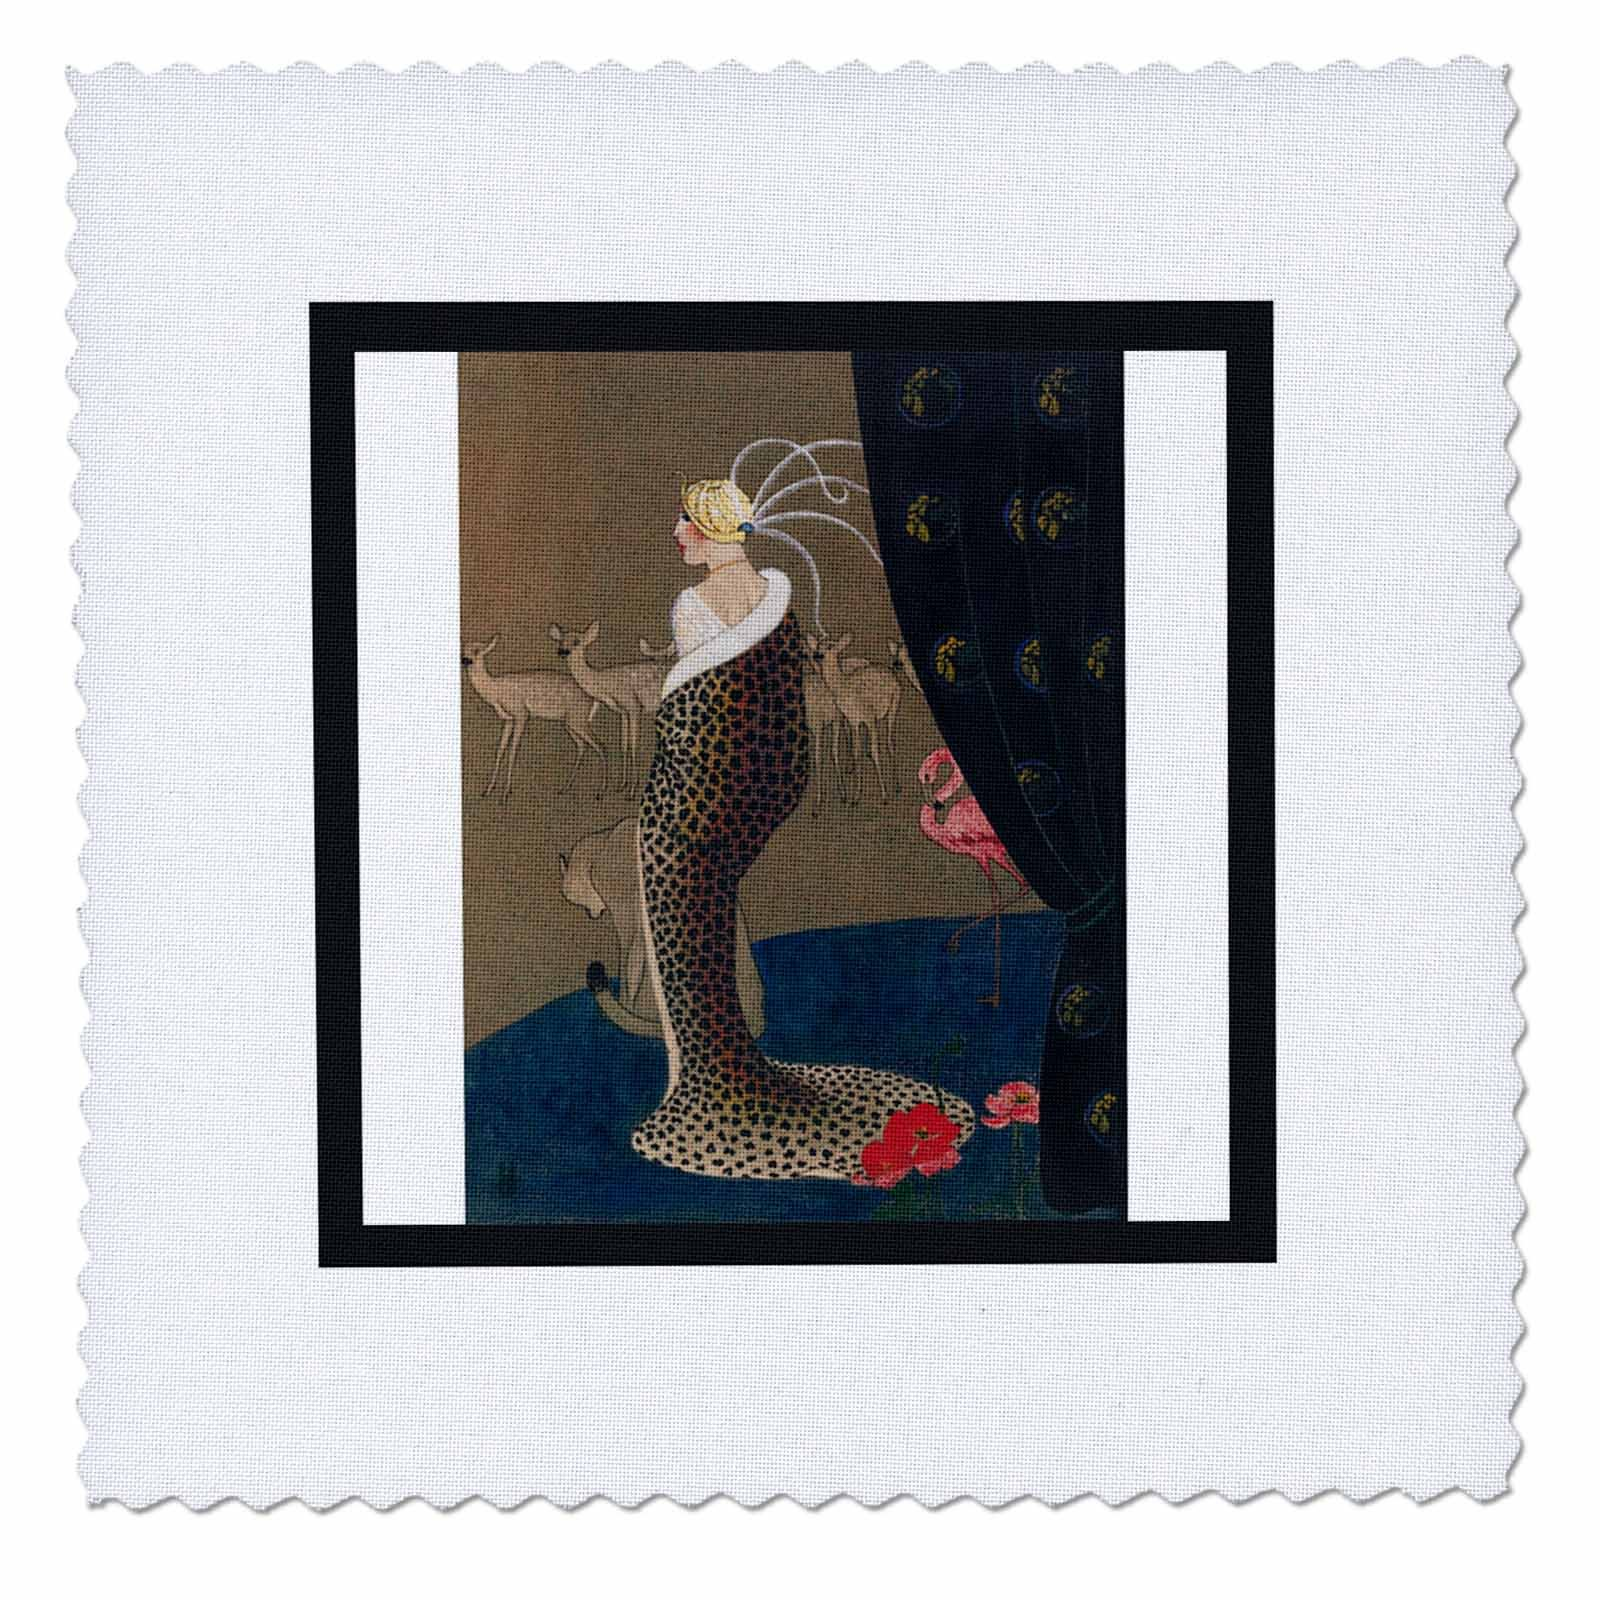 3dRose Print Of WPA Art Deco Woman In Cheetah Coat With Animals - Quilt Square, 12 by 12-inch (qs_223023_4)